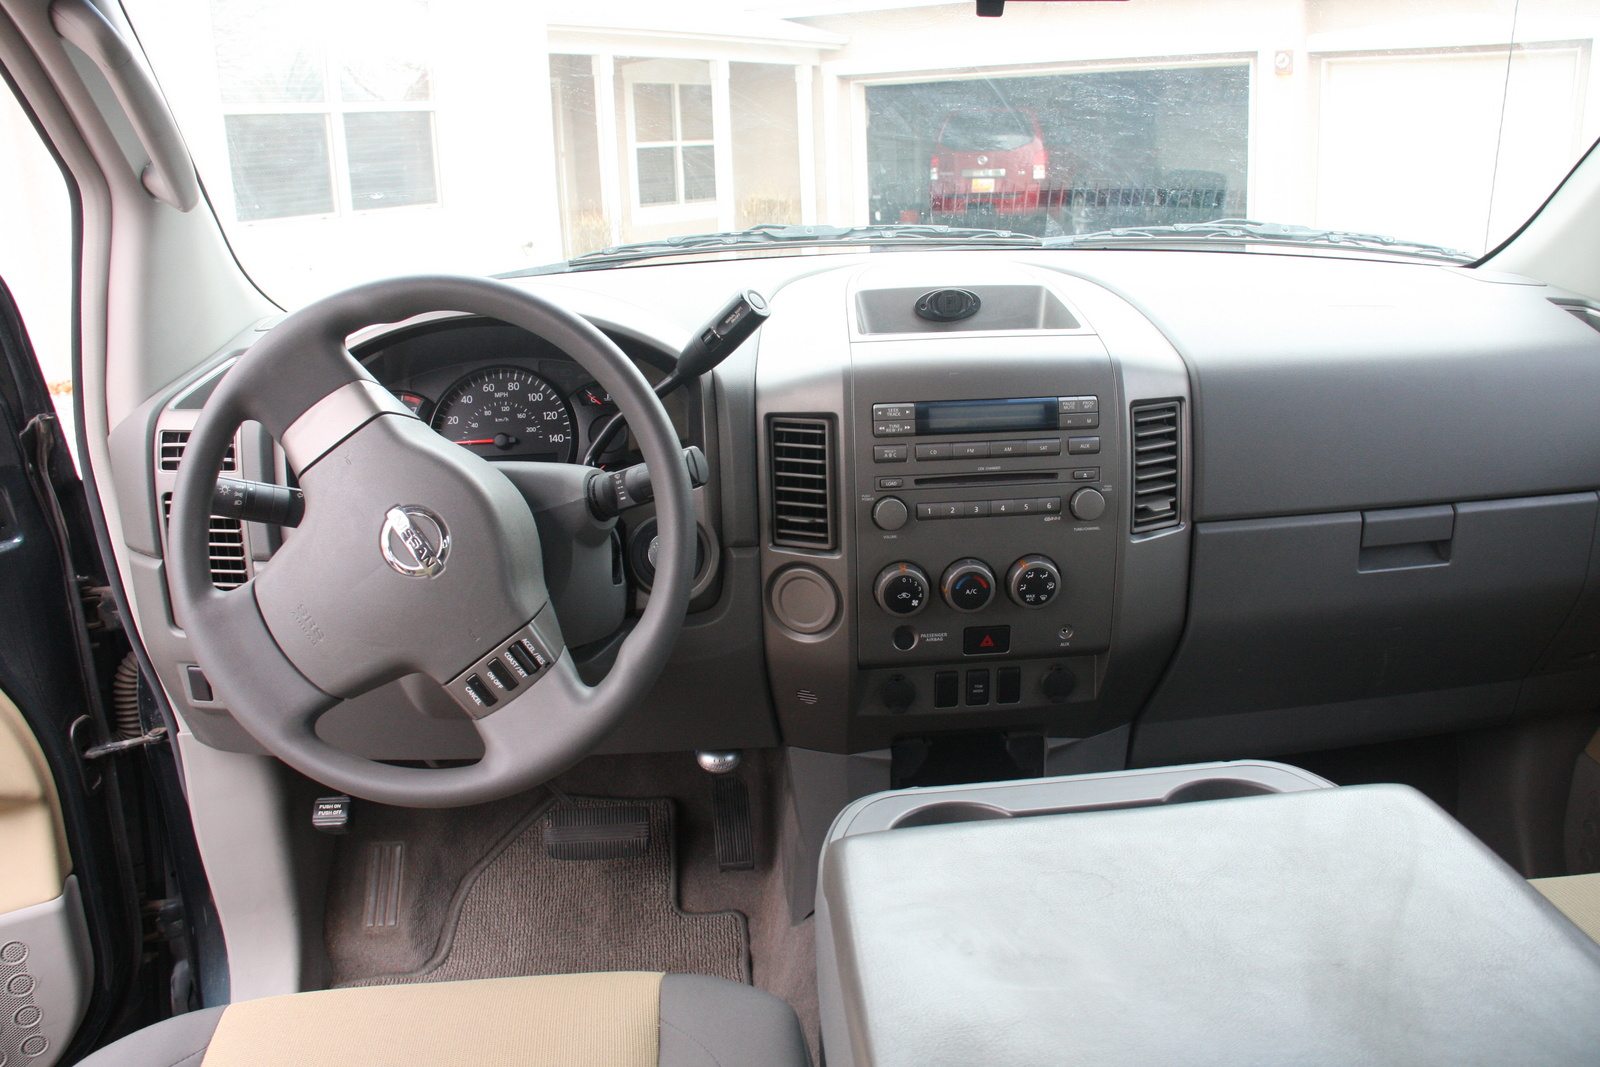 2004 nissan titan interior pictures cargurus. Black Bedroom Furniture Sets. Home Design Ideas